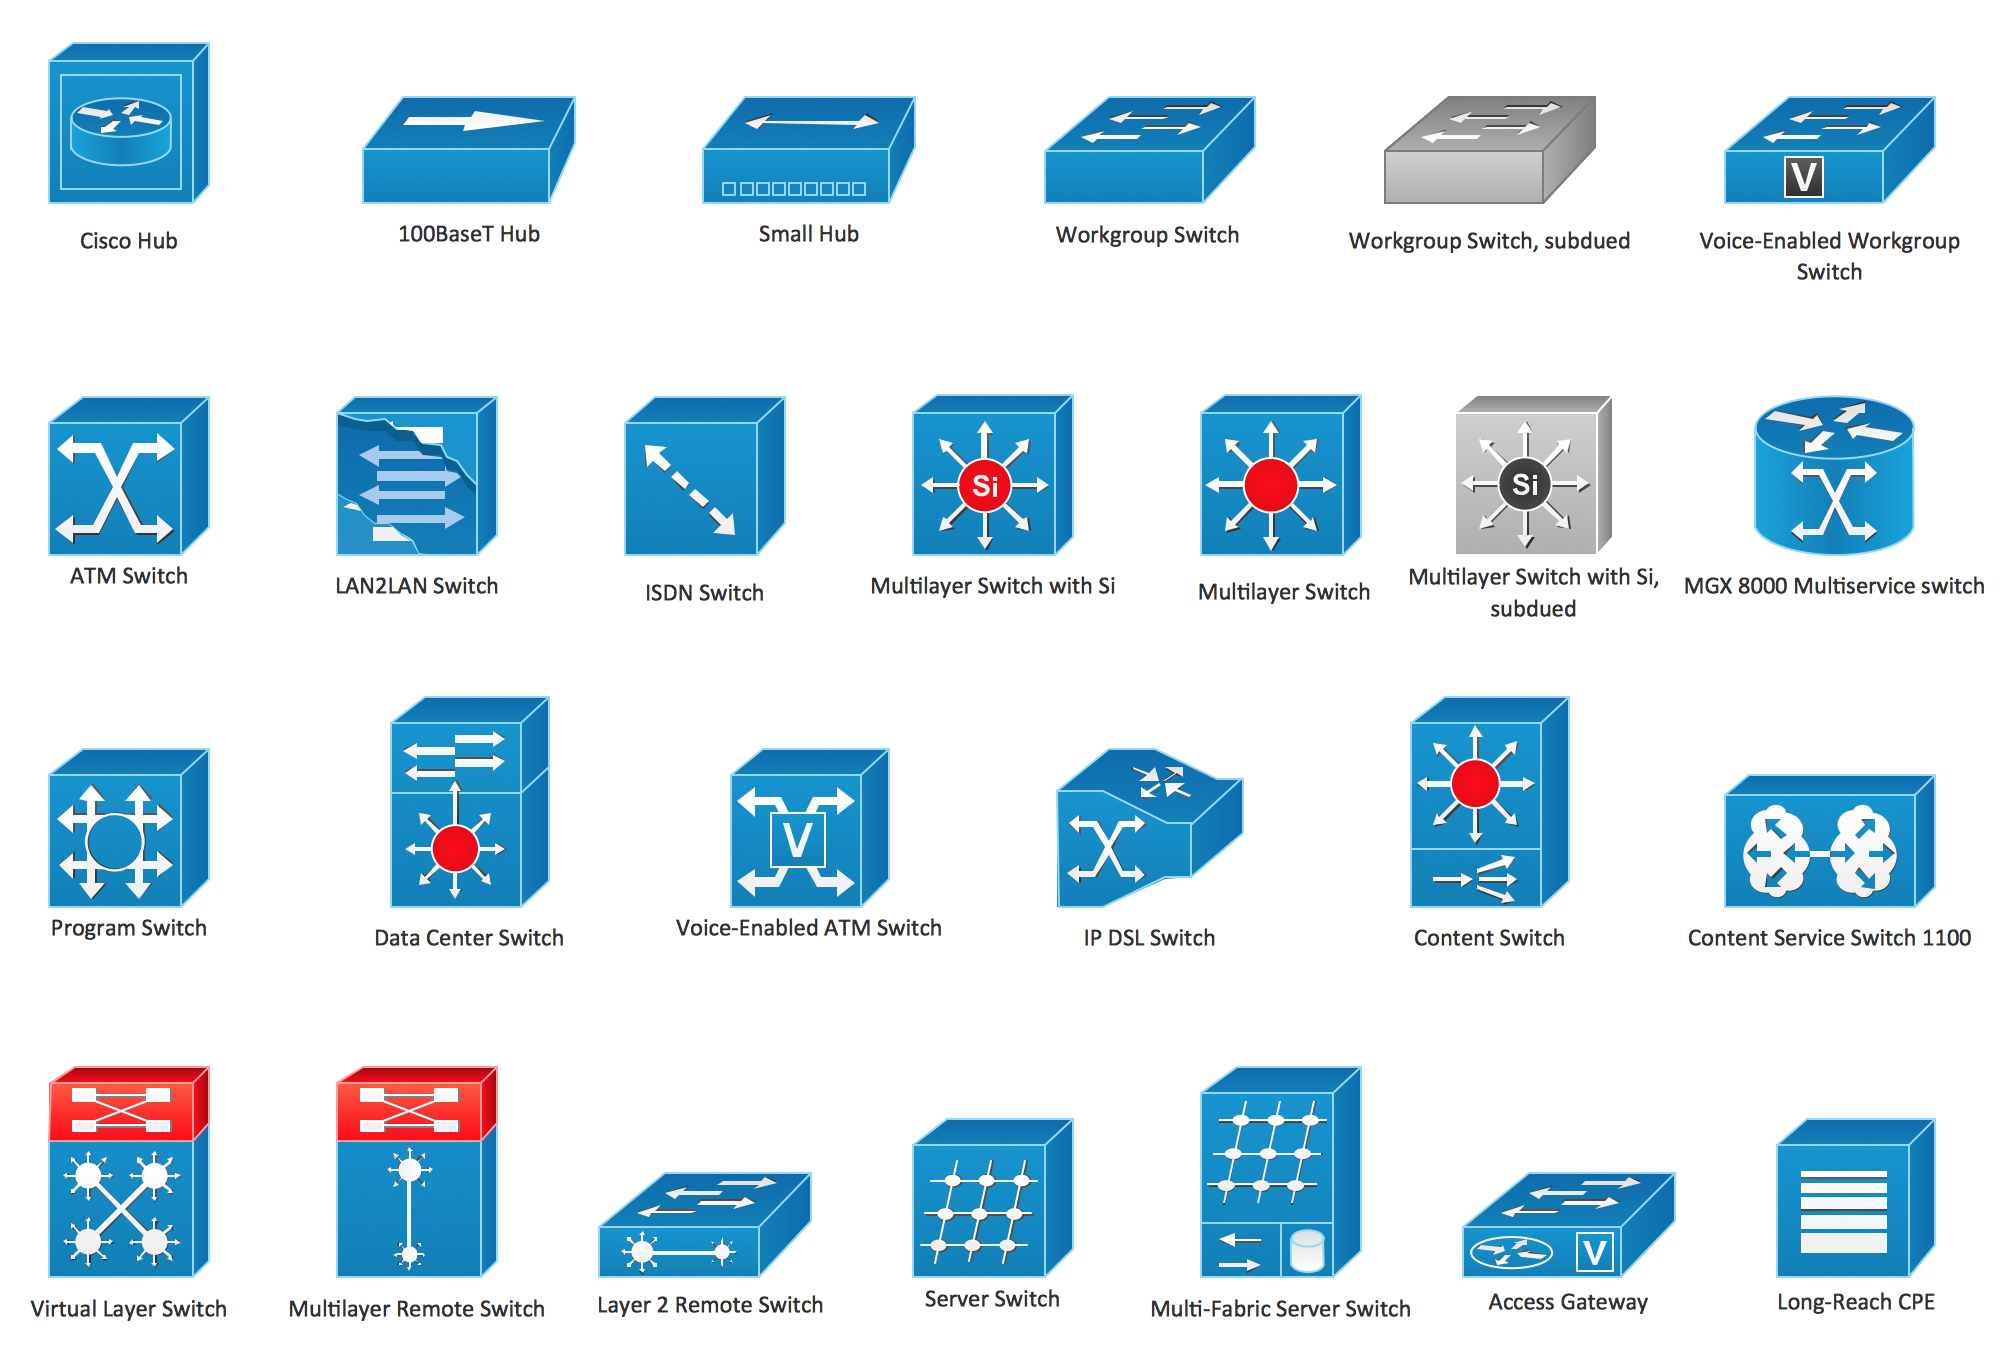 Cisco Switches and Hubs. Cisco icons, shapes, stencils and symbols